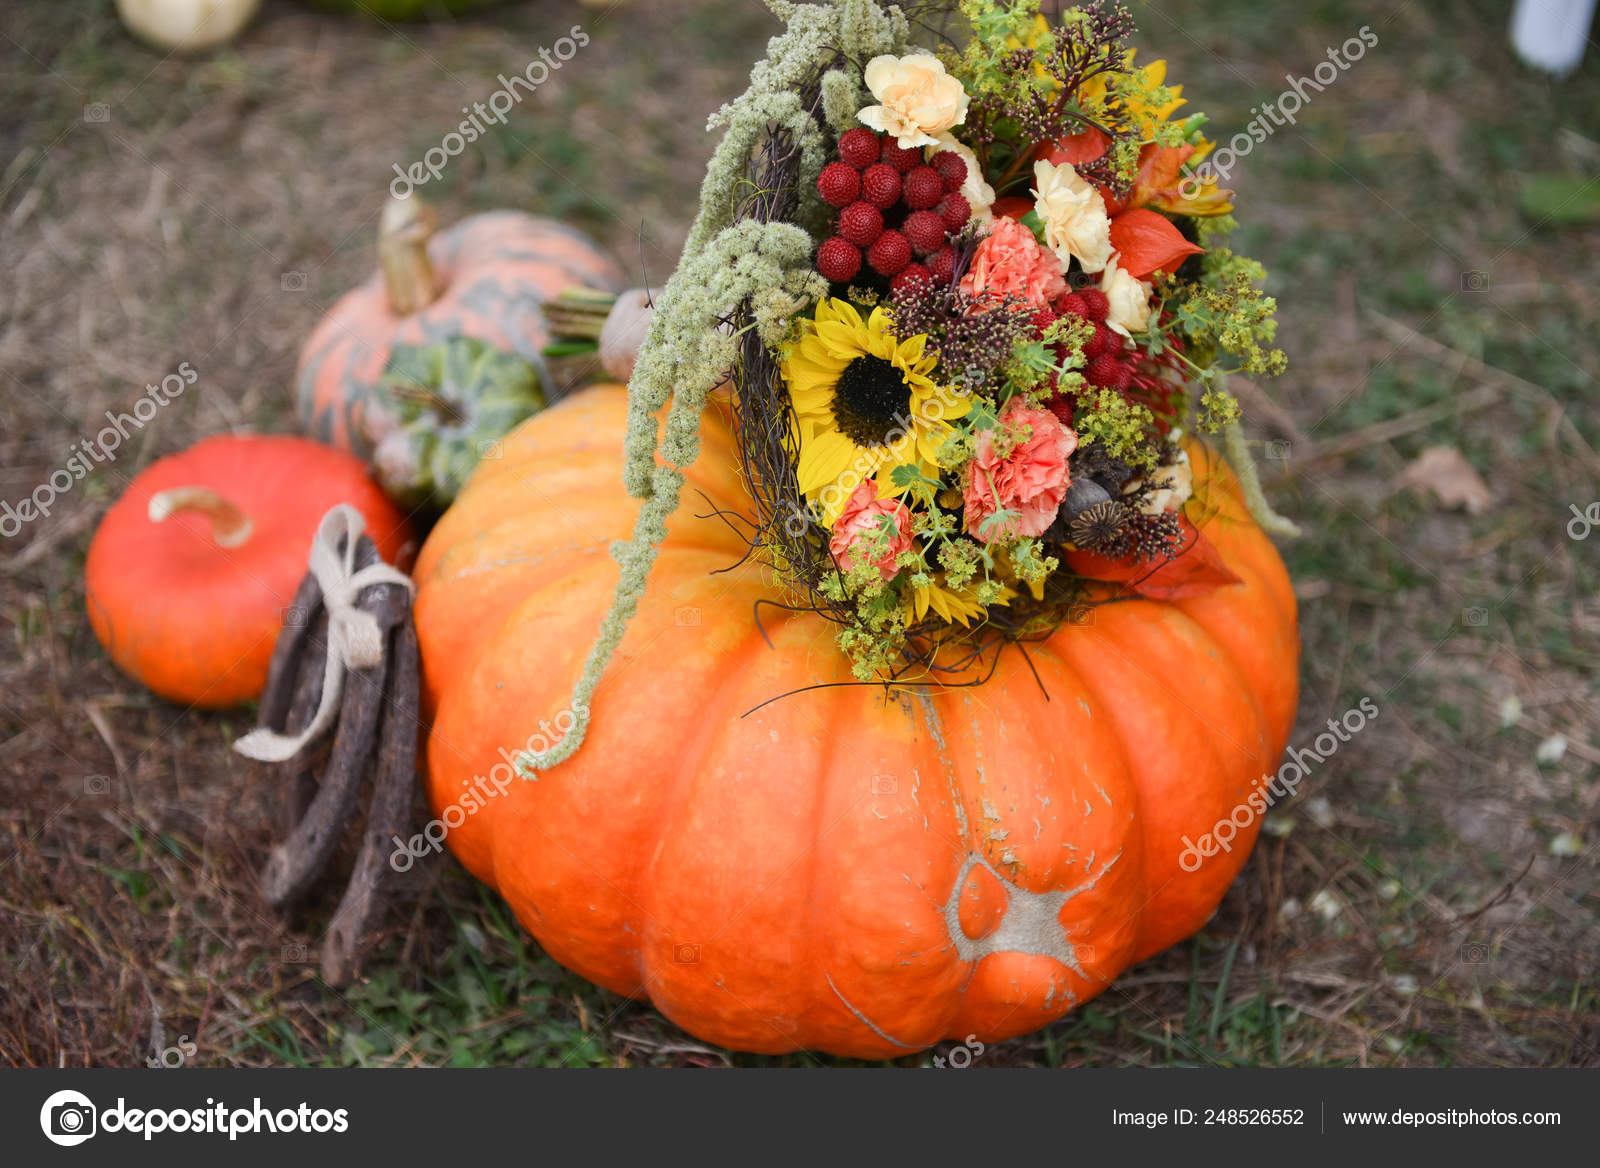 Autumn Floral Bouquet Pumpkin Vase For Halloween Table Setting And Floral Decor For A Rustic Wedding Stock Photo C Olgachan 248526552